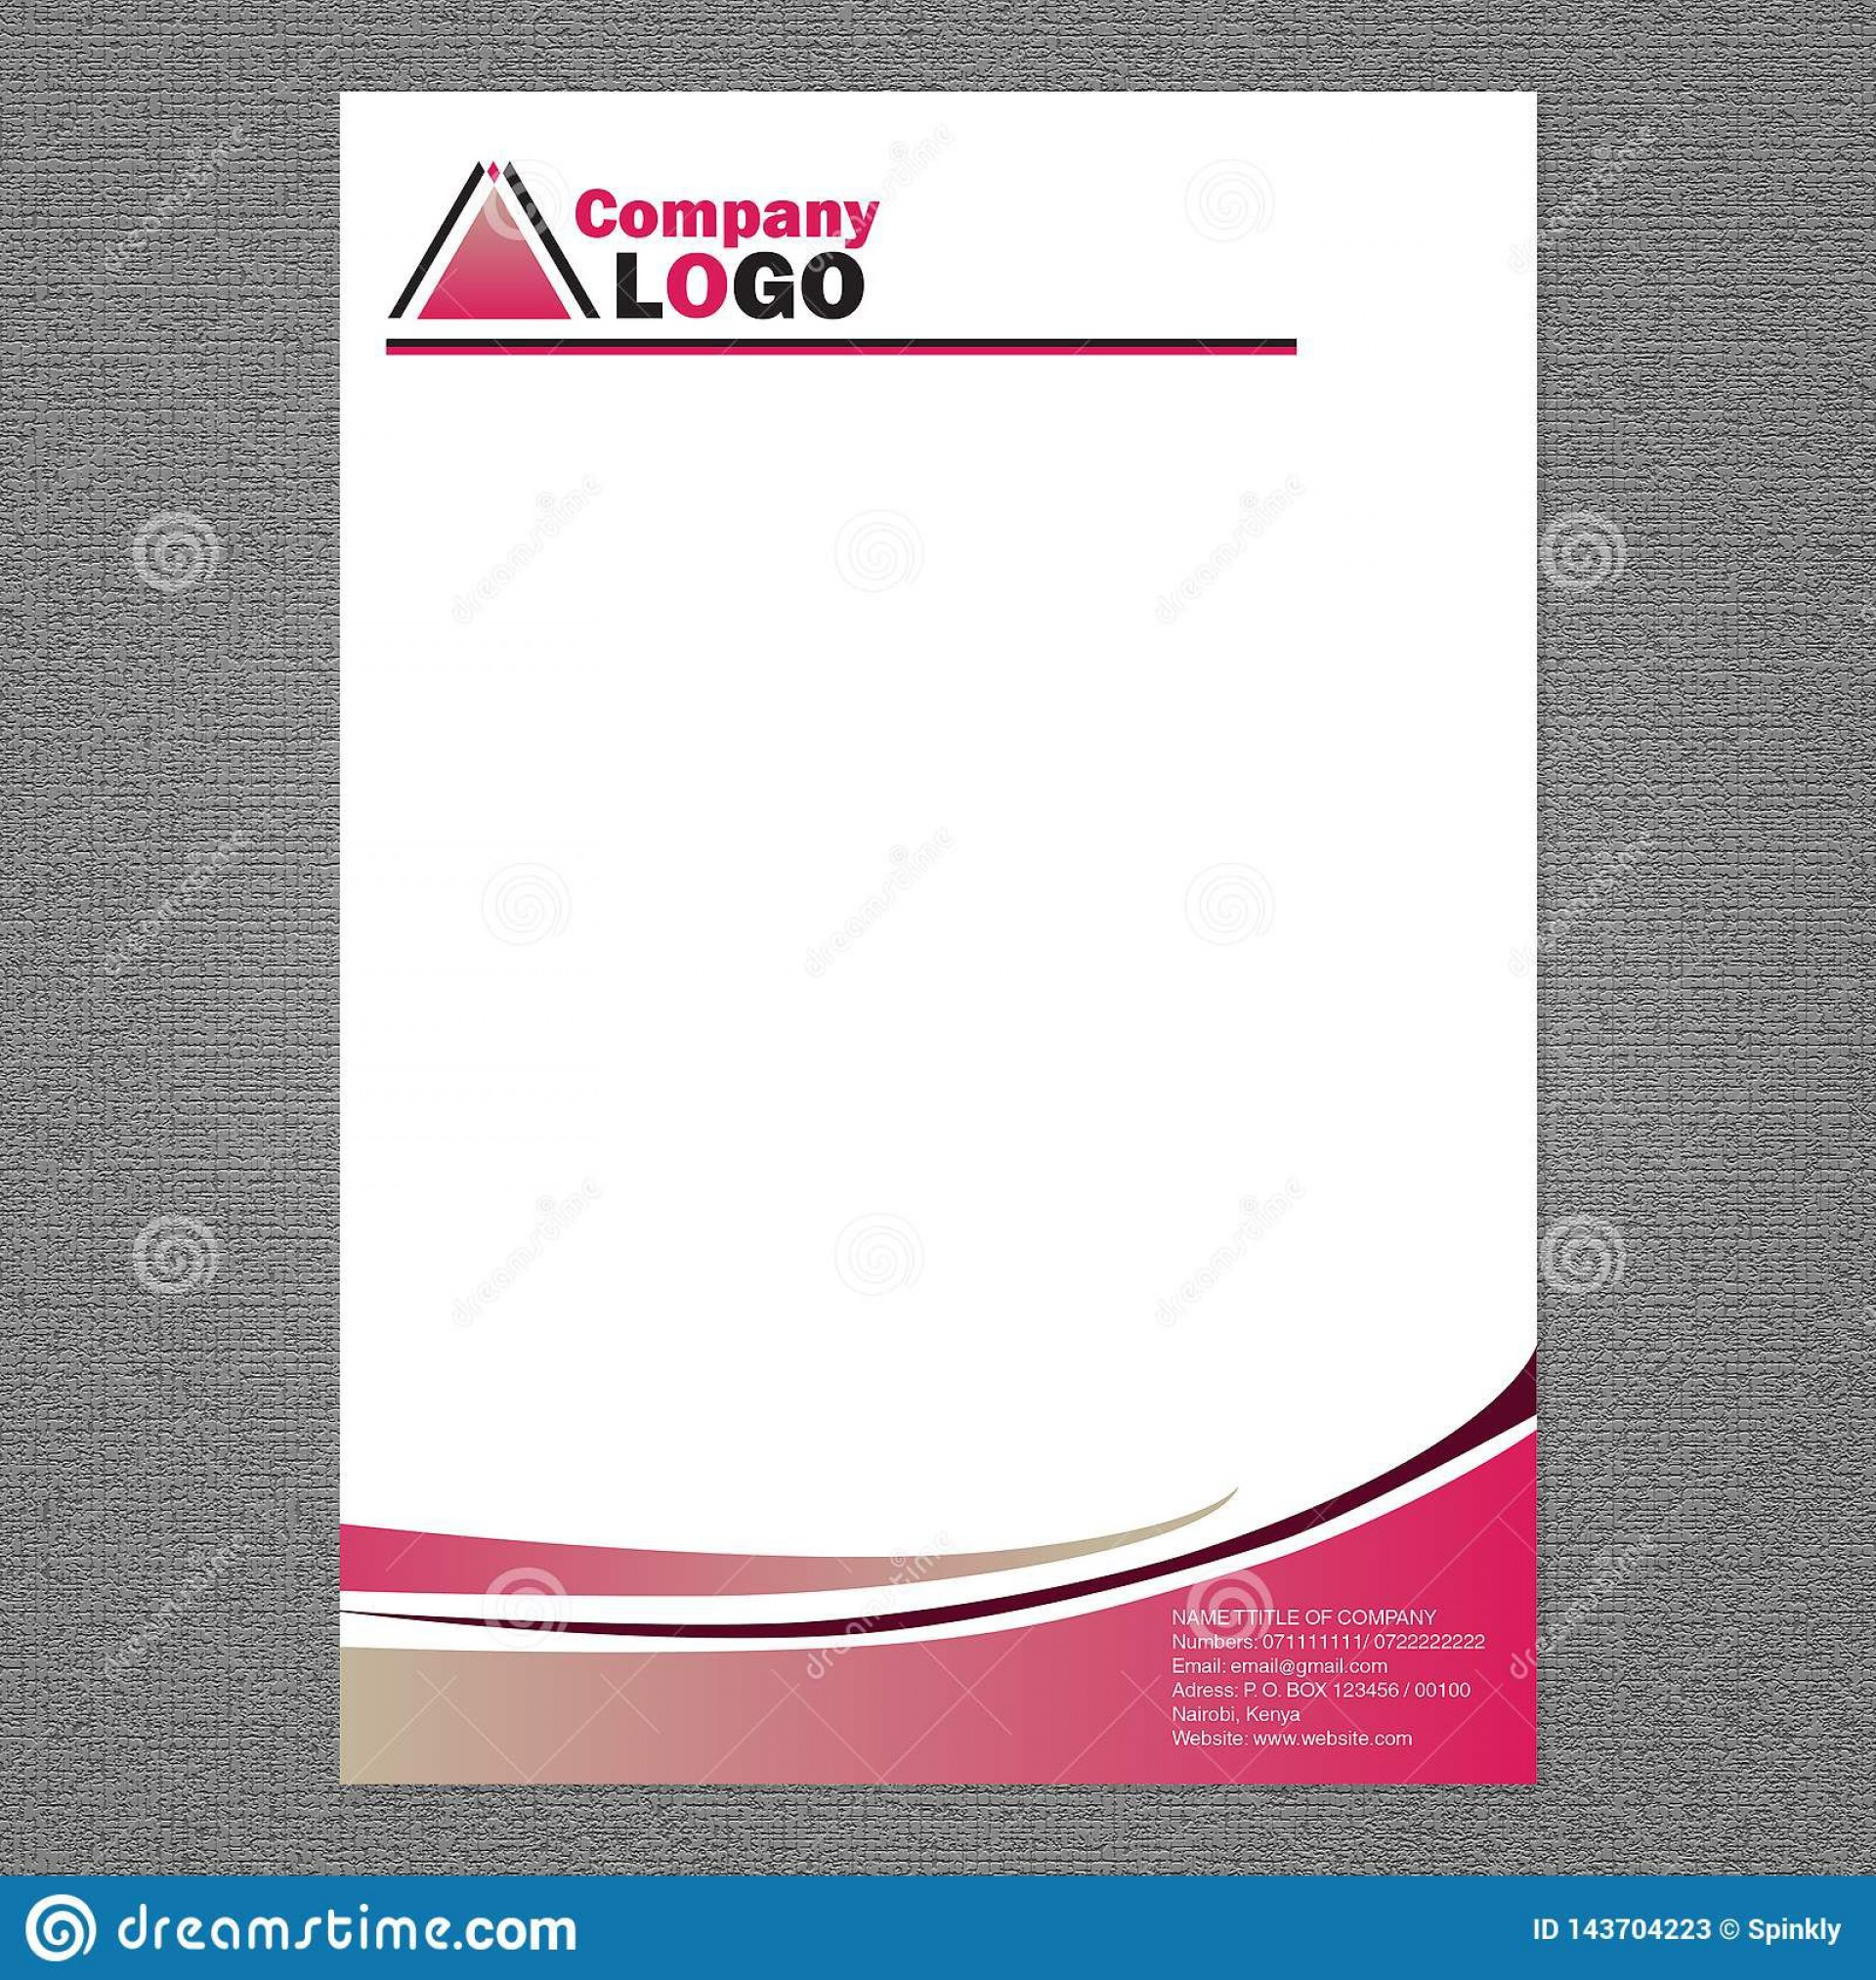 004 Fascinating Letter Pad Design Template Example  Letterhead Download Ai Free In Word1920